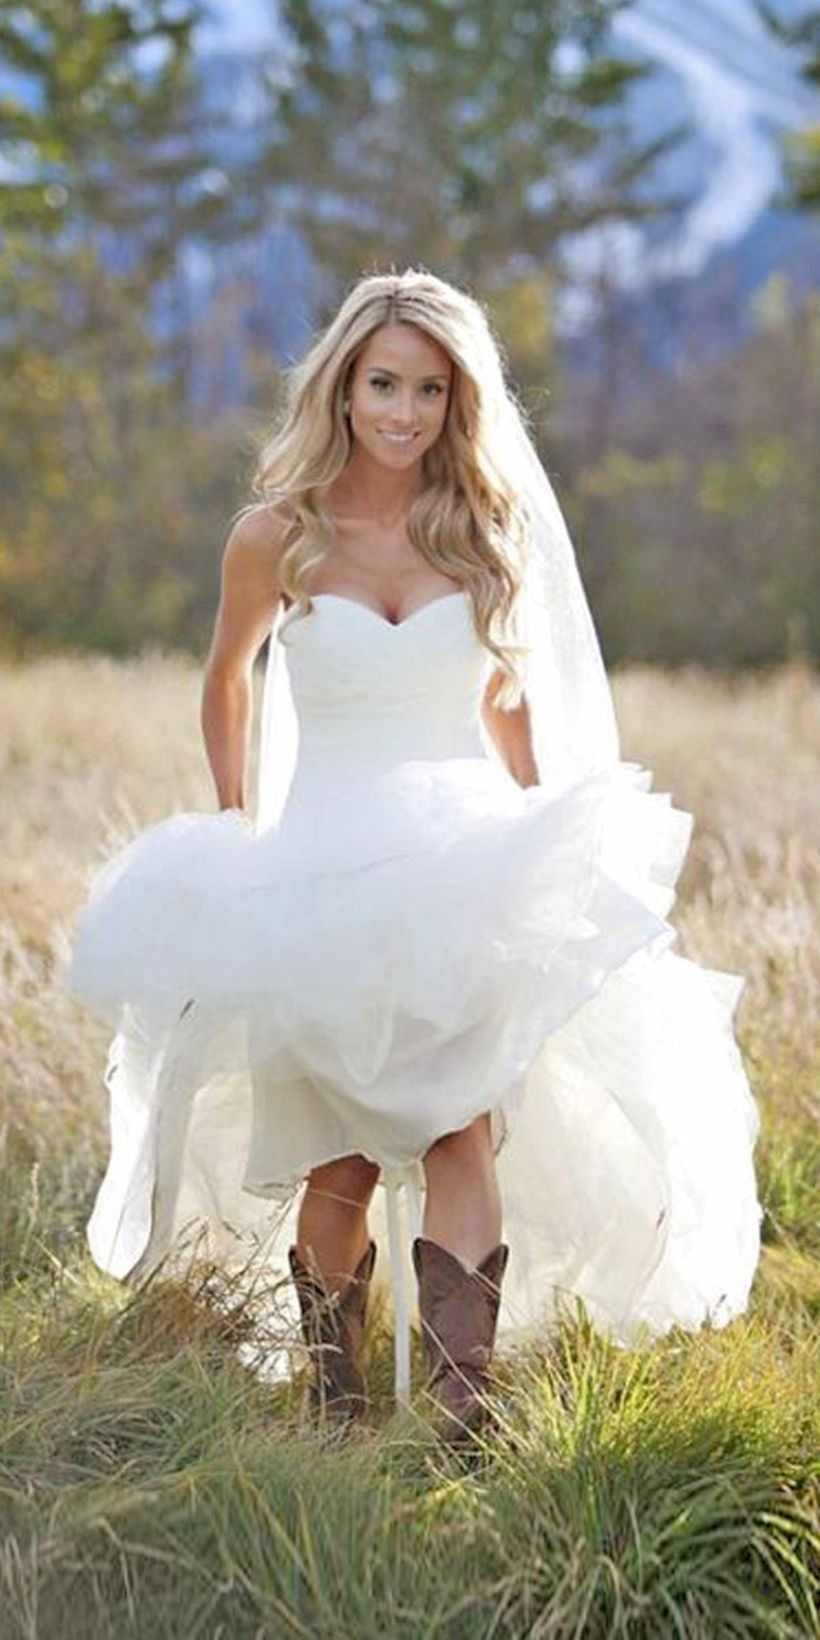 vintage wedding day outfit ideas using country boots wedding